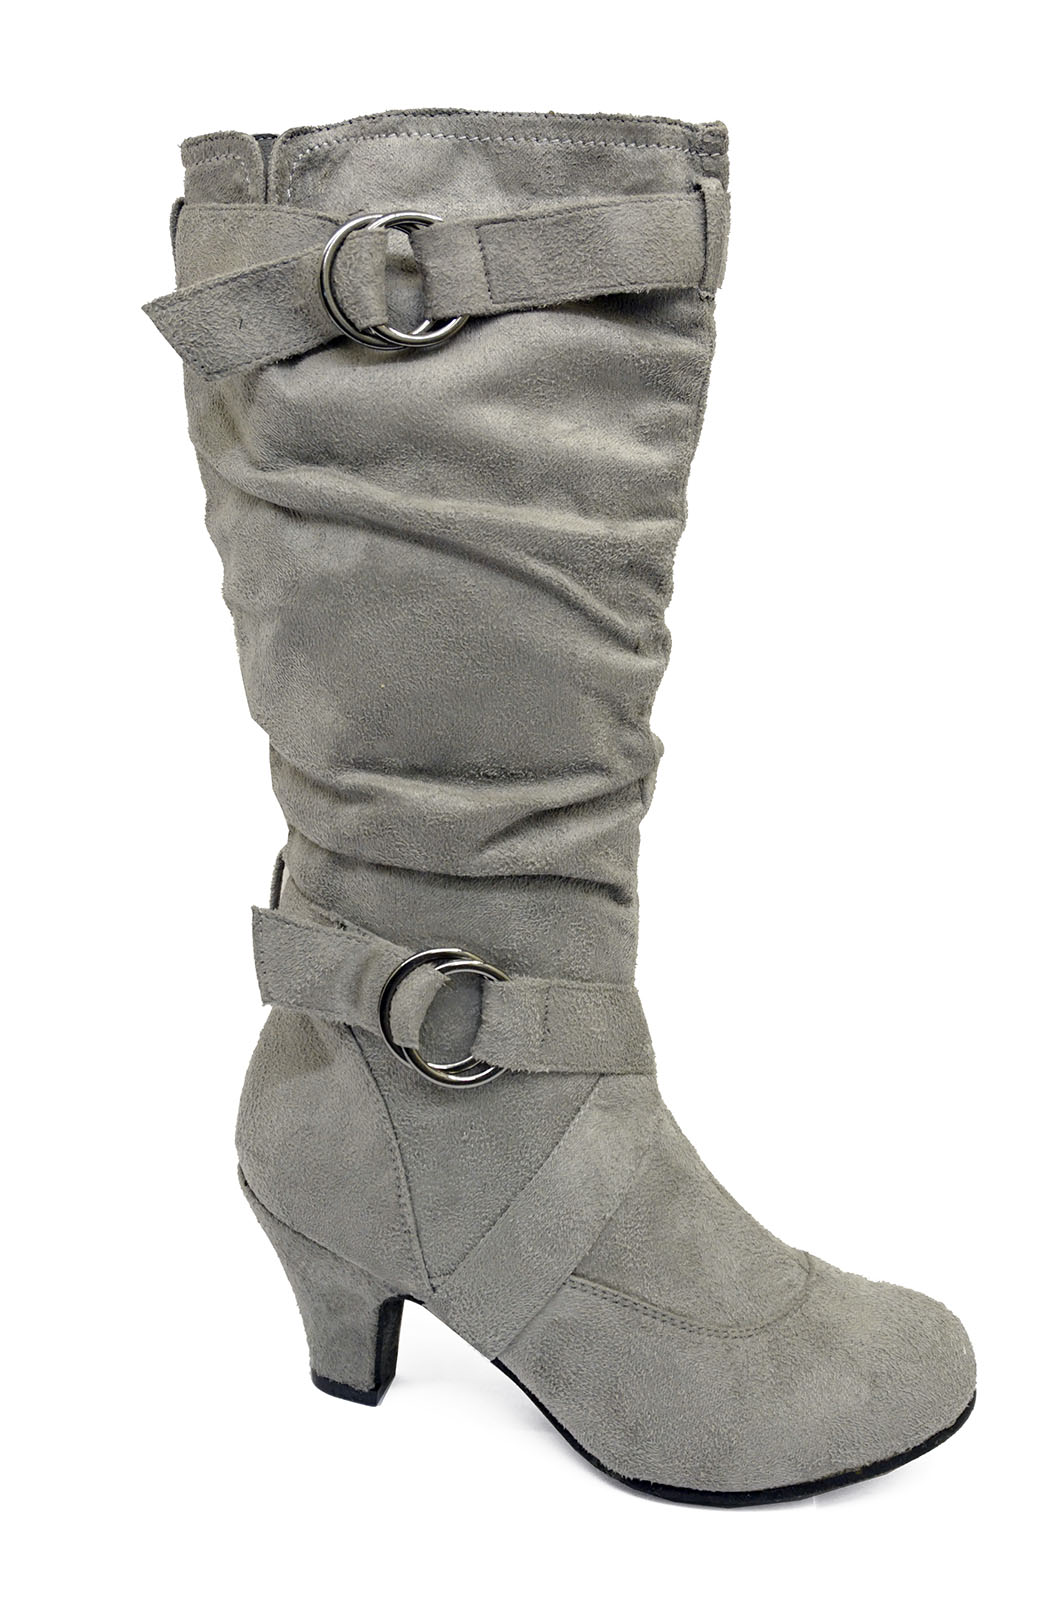 LADIES-GREY-ZIP-UP-BIKER-SLOUCH-RUCHED-TALL-KNEE-CALF-LOW-HEEL-BOOTS-SHOES-4-10 thumbnail 20